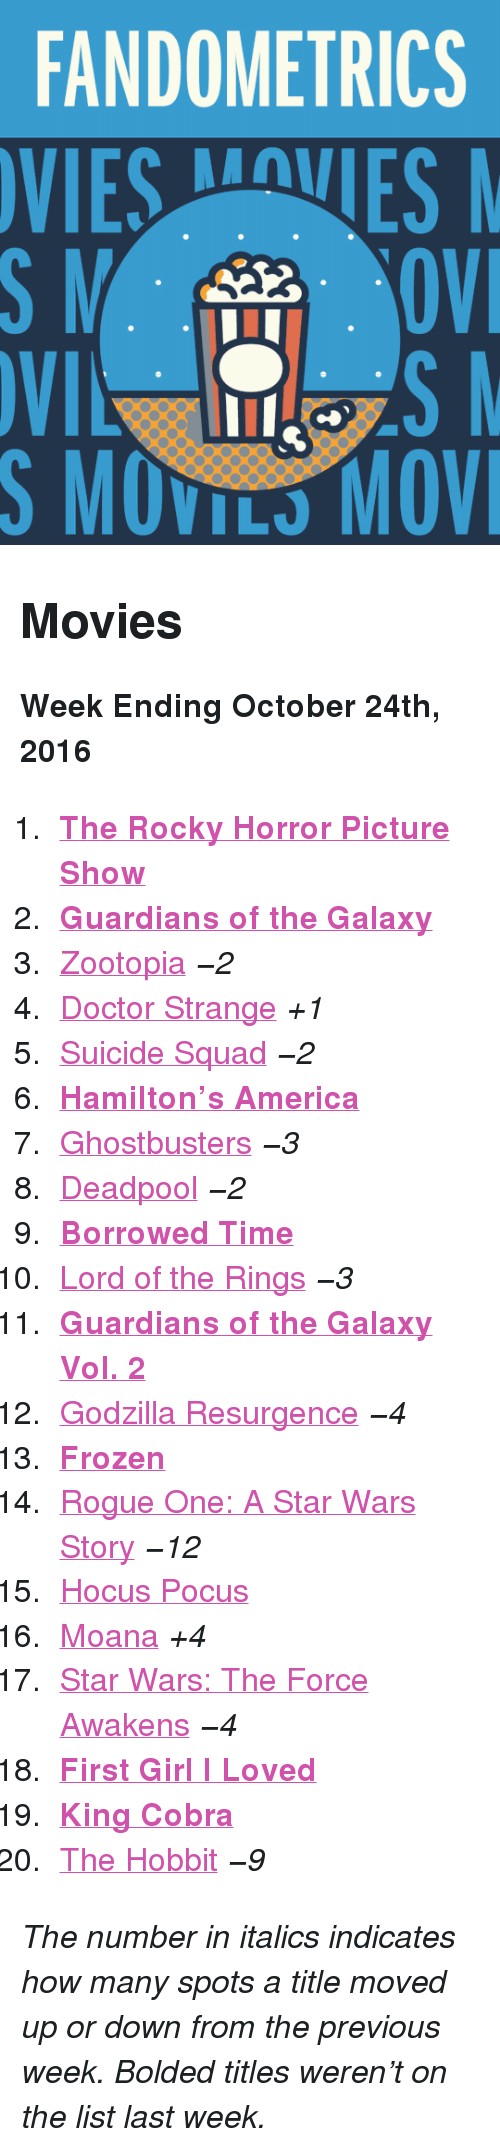 "moana: FANDOMETRICS  VIESVES  S MOVILS MOV <h2>Movies</h2><p><b>Week Ending October 24th, 2016</b></p><ol><li><a href=""http://www.tumblr.com/search/rocky%20horror%20picture%20show""><b>The Rocky Horror Picture Show</b></a></li>  <li><a href=""http://www.tumblr.com/search/guardians%20of%20the%20galaxy""><b>Guardians of the Galaxy</b></a></li>  <li><a href=""http://www.tumblr.com/search/zootopia"">Zootopia</a> <i>−2</i></li>  <li><a href=""http://www.tumblr.com/search/doctor%20strange"">Doctor Strange</a> <i>+1</i></li>  <li><a href=""http://www.tumblr.com/search/suicide%20squad"">Suicide Squad</a> <i>−2</i></li>  <li><a href=""http://www.tumblr.com/search/hamilton's%20america""><b>Hamilton&rsquo;s America</b></a></li>  <li><a href=""http://www.tumblr.com/search/ghostbusters"">Ghostbusters</a> <i>−3</i></li>  <li><a href=""http://www.tumblr.com/search/deadpool"">Deadpool</a> <i>−2</i></li>  <li><a href=""http://www.tumblr.com/search/borrowed%20time""><b>Borrowed Time</b></a></li>  <li><a href=""http://www.tumblr.com/search/lotr"">Lord of the Rings</a> <i>−3</i></li>  <li><a href=""http://www.tumblr.com/search/gotg%20vol%202""><b>Guardians of the Galaxy Vol. 2</b></a></li>  <li><a href=""http://www.tumblr.com/search/godzilla"">Godzilla Resurgence</a> <i>−4</i></li>  <li><a href=""http://www.tumblr.com/search/frozen""><b>Frozen</b></a></li>  <li><a href=""http://www.tumblr.com/search/rogue%20one"">Rogue One: A Star Wars Story</a> <i>−12</i></li>  <li><a href=""http://www.tumblr.com/search/hocus%20pocus"">Hocus Pocus</a></li>  <li><a href=""http://www.tumblr.com/search/moana"">Moana</a> <i>+4</i></li>  <li><a href=""http://www.tumblr.com/search/the%20force%20awakens"">Star Wars: The Force Awakens</a> <i>−4</i></li>  <li><a href=""http://www.tumblr.com/search/first%20girl%20i%20loved""><b>First Girl I Loved</b></a></li>  <li><a href=""http://www.tumblr.com/search/king%20cobra""><b>King Cobra</b></a></li>  <li><a href=""http://www.tumblr.com/search/the%20hobbit"">The Hobbit</a> <i>−9</i></li></ol><p><i>The number in italics indicates how many spots a title moved up or down from the previous week. Bolded titles weren't on the list last week.</i></p>"